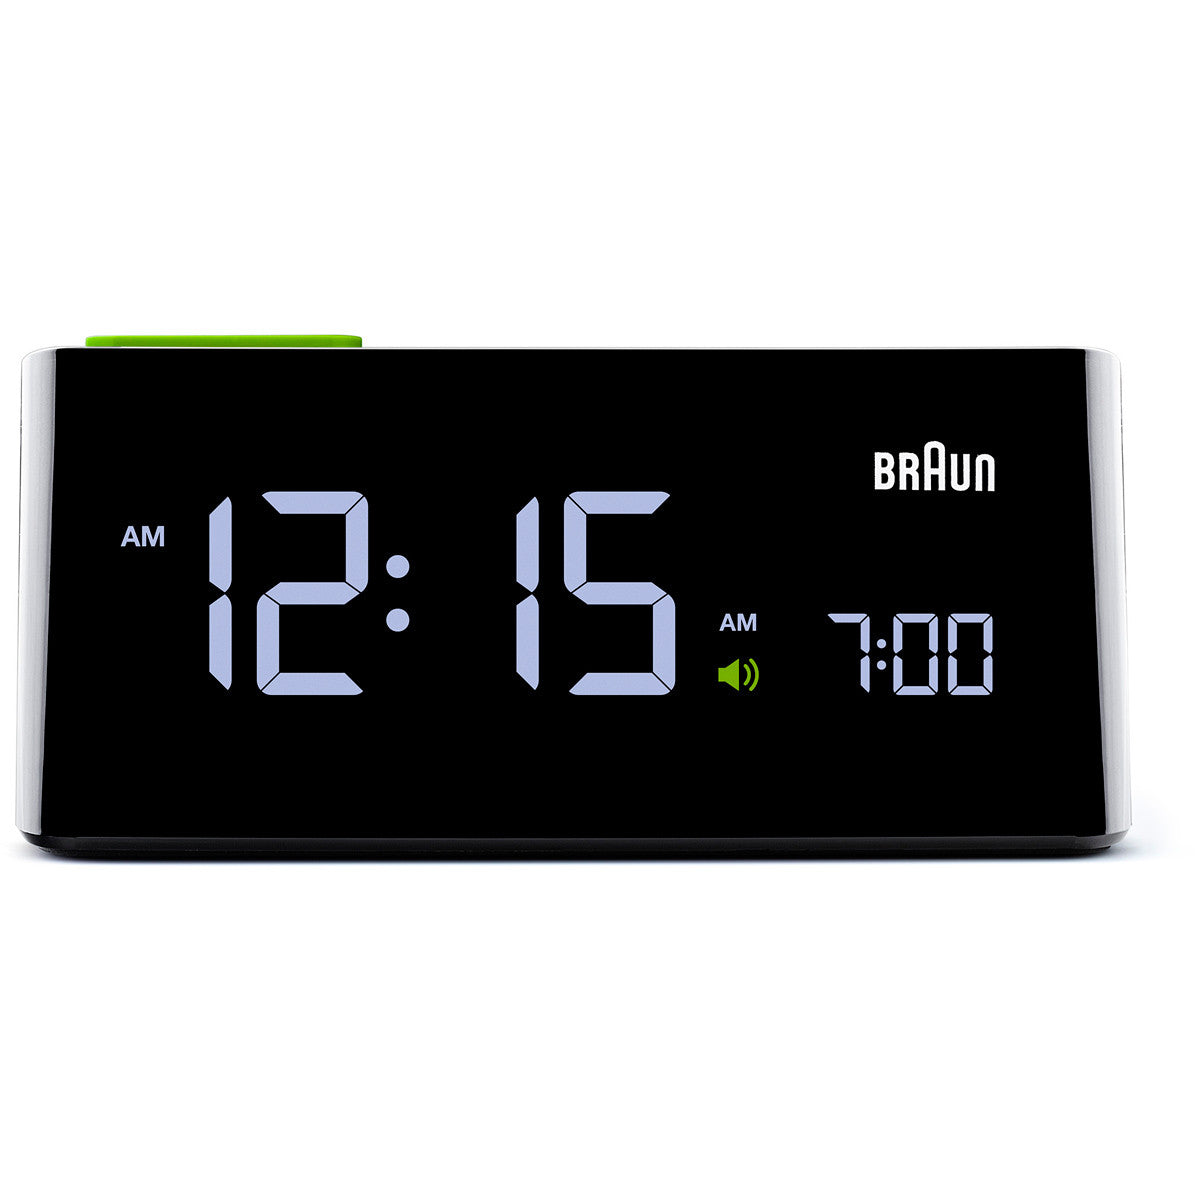 braun digital lcd alarm clock black bn c016bk. Black Bedroom Furniture Sets. Home Design Ideas